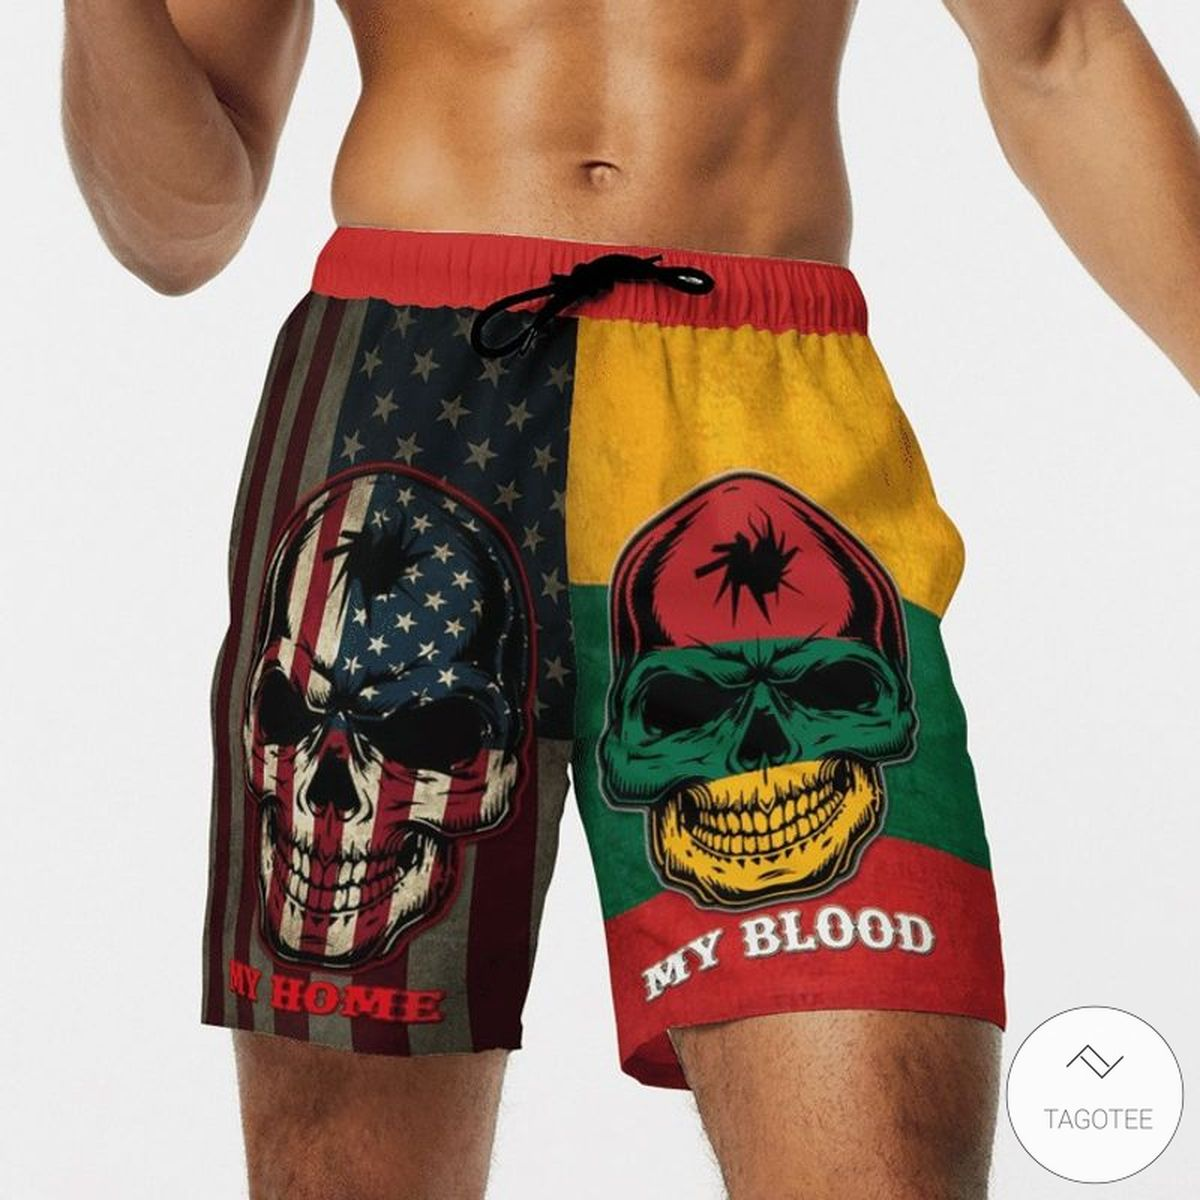 My Home My blood Lithuania Beach Short